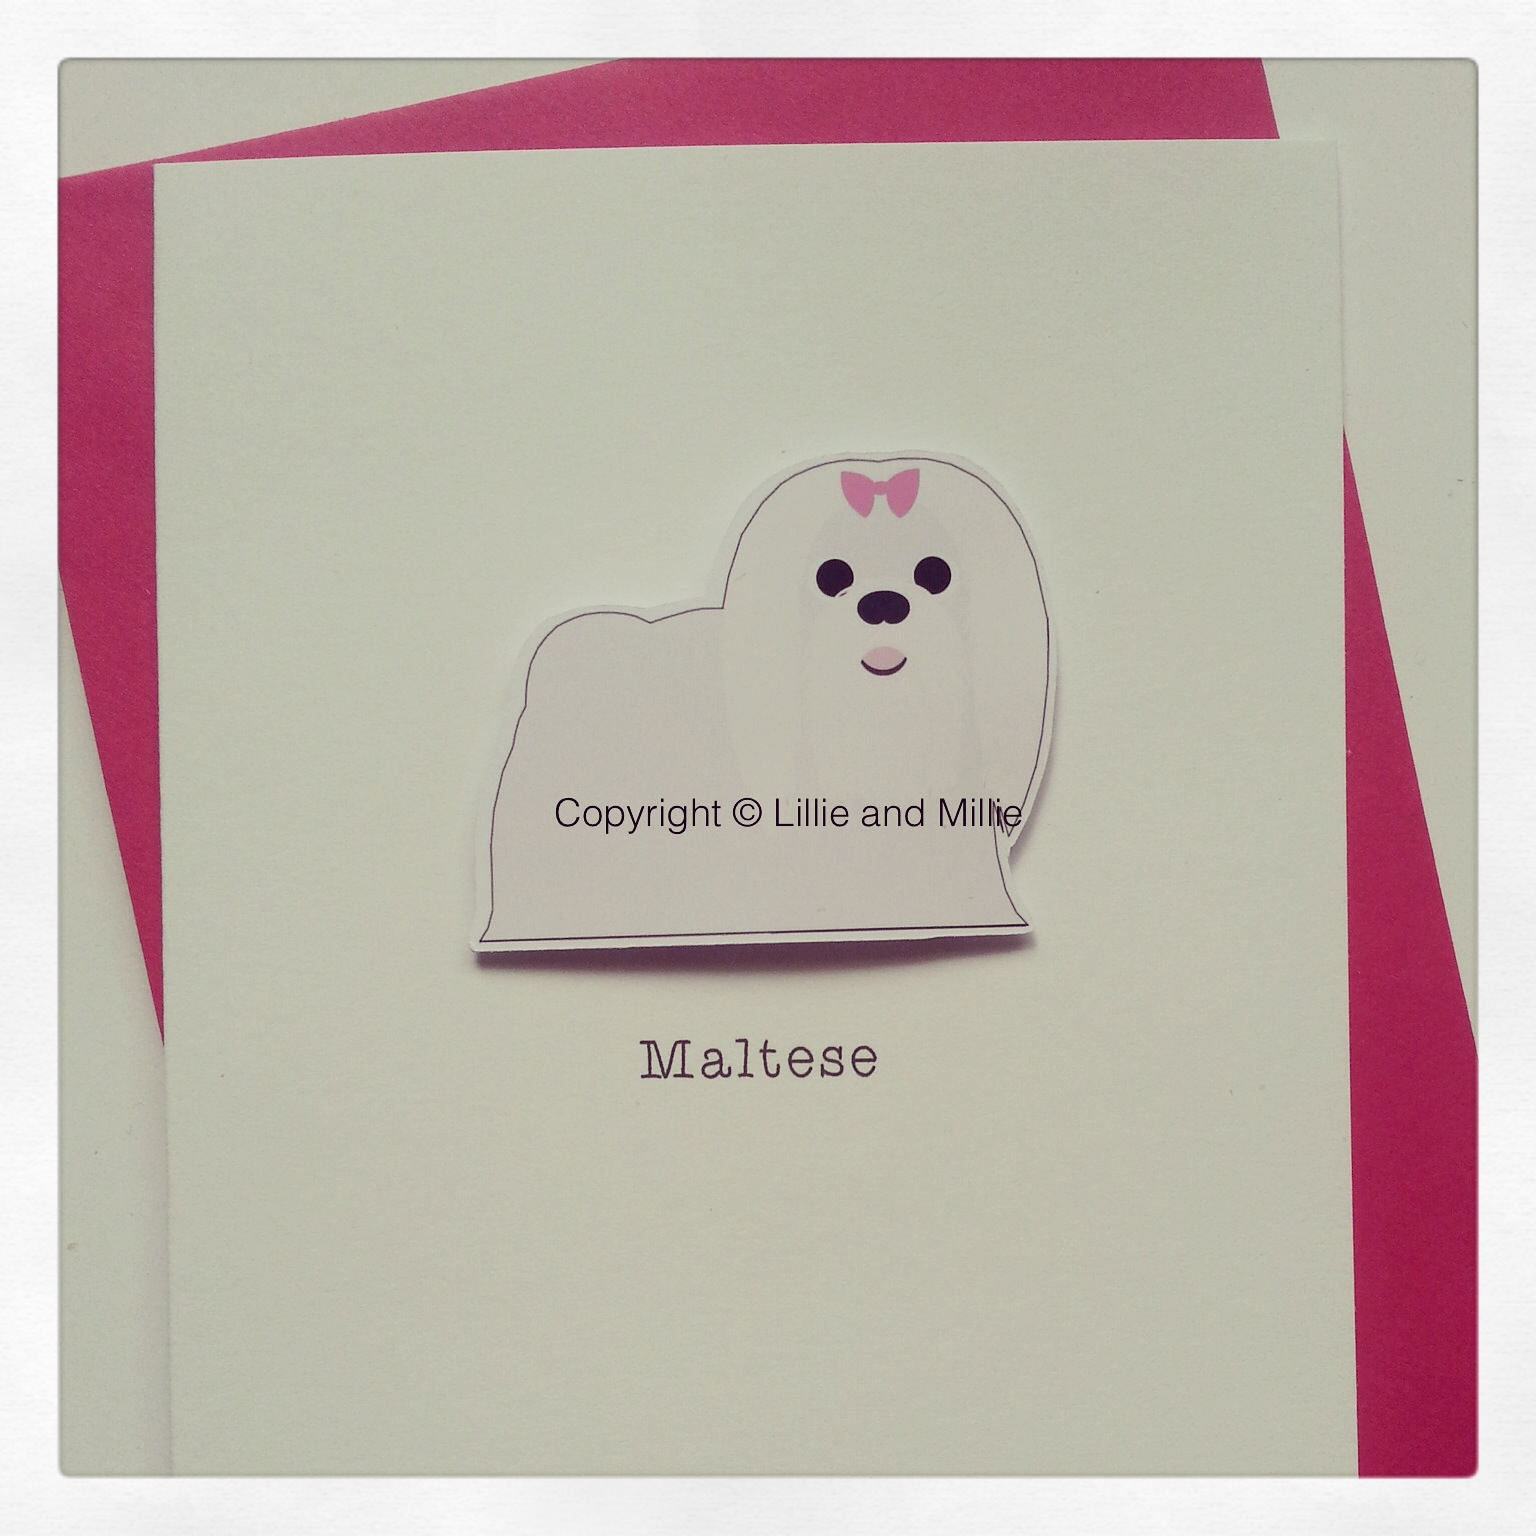 Cute and Cuddly Maltese Dog Greetings Card